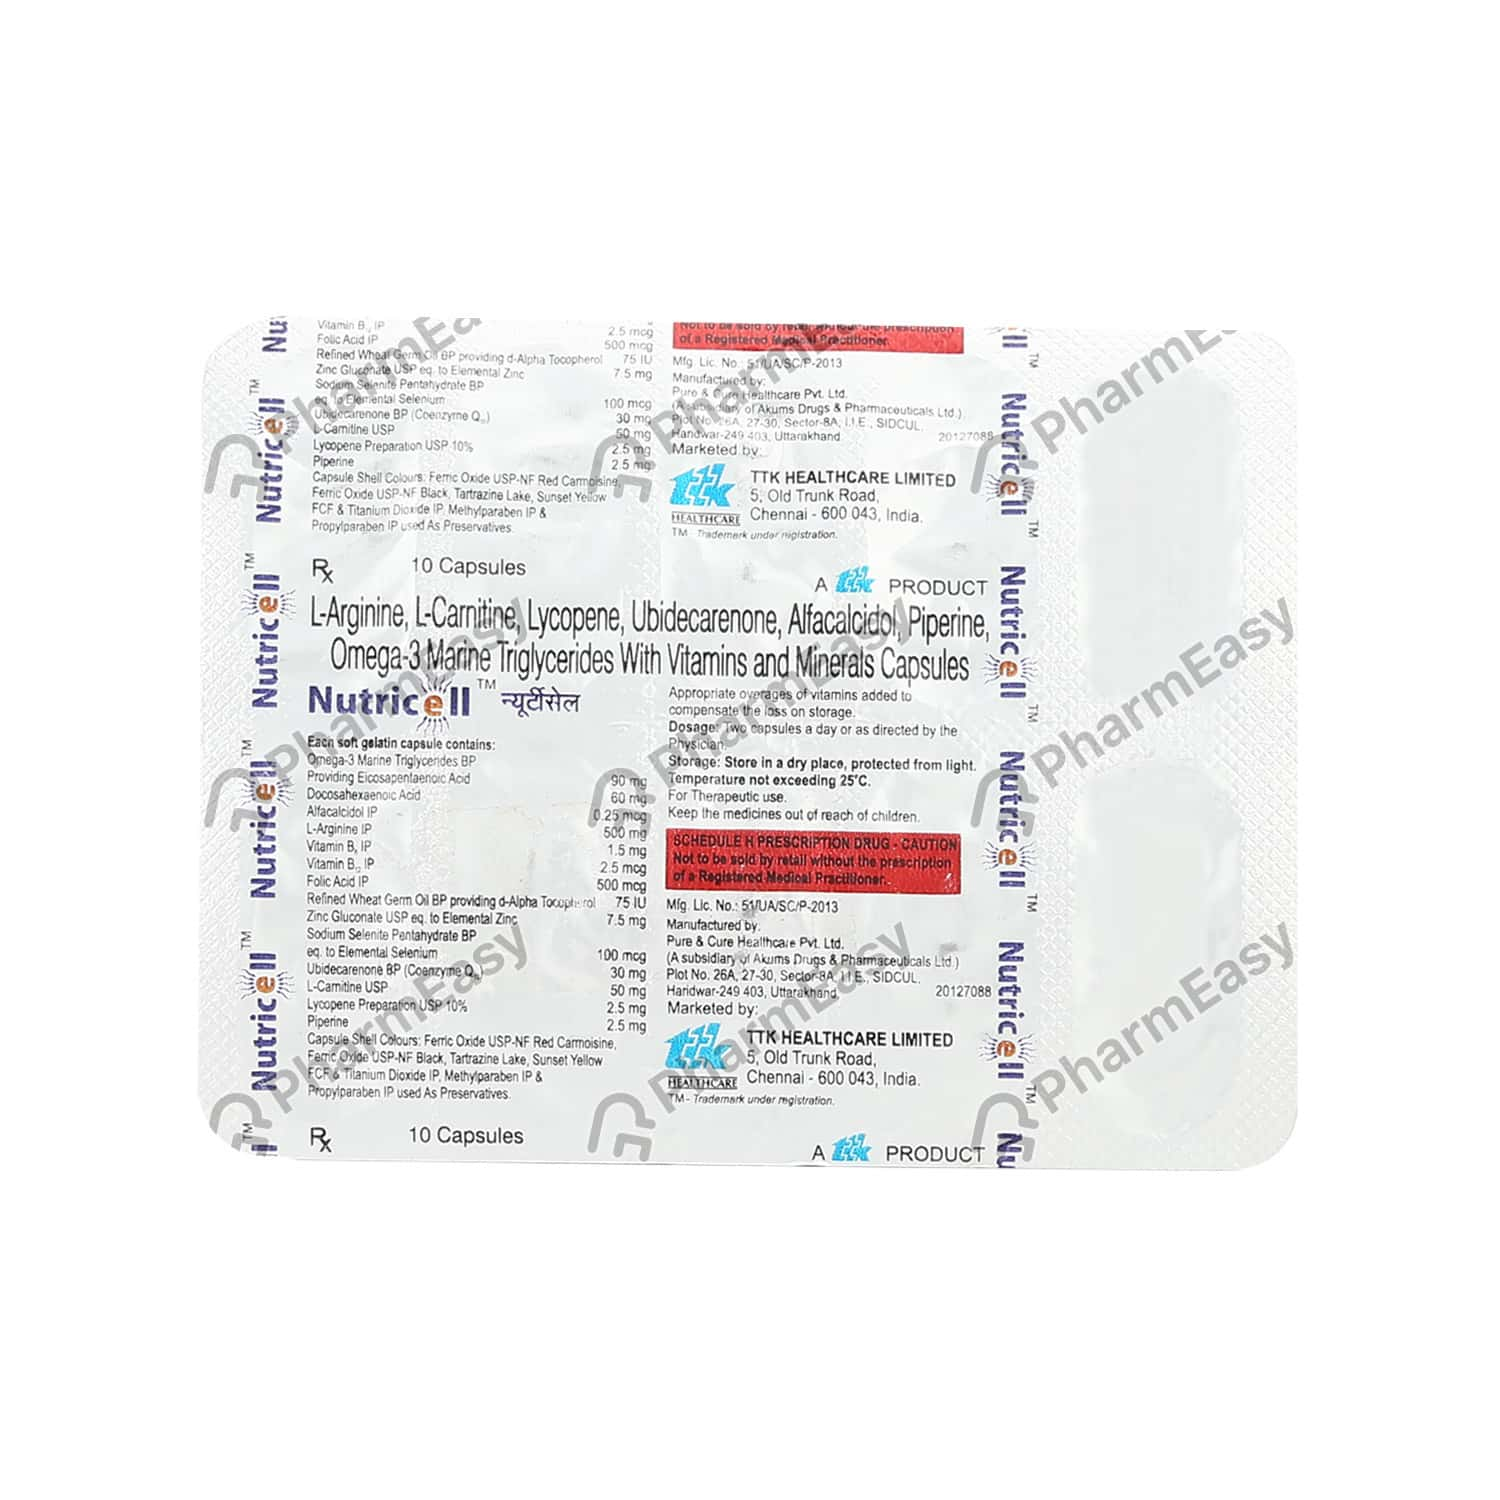 Nutricell Capsule